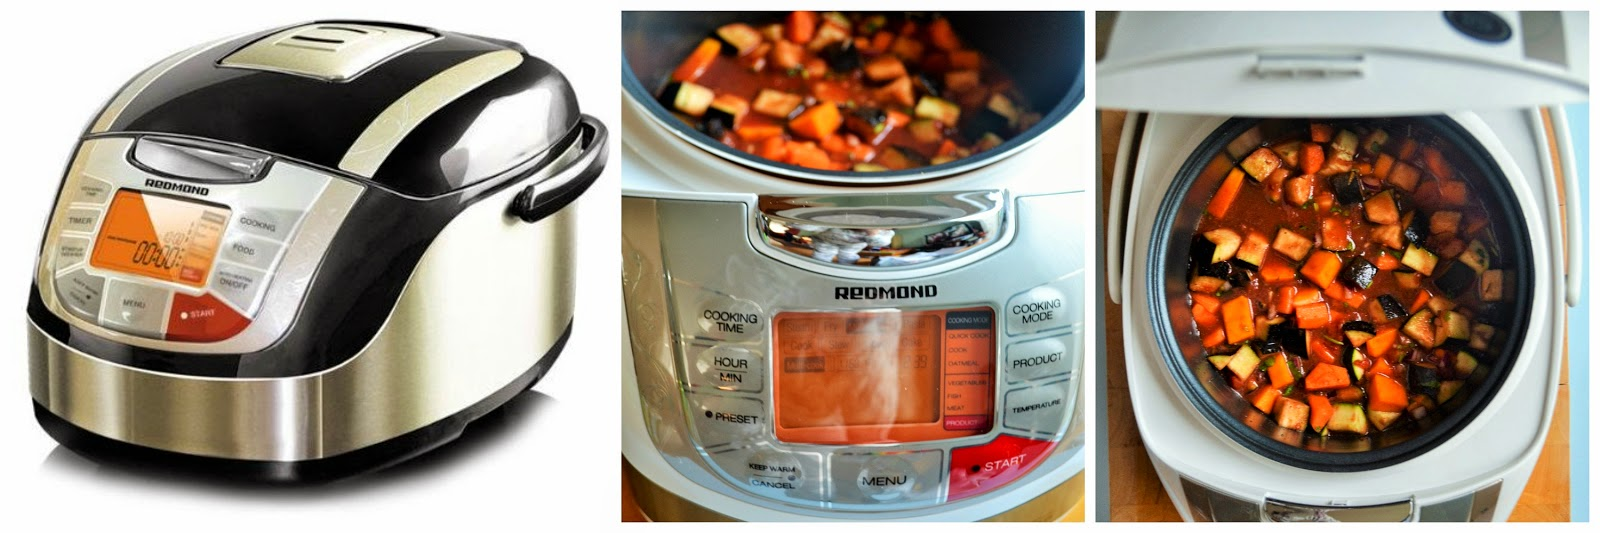 multicooker review